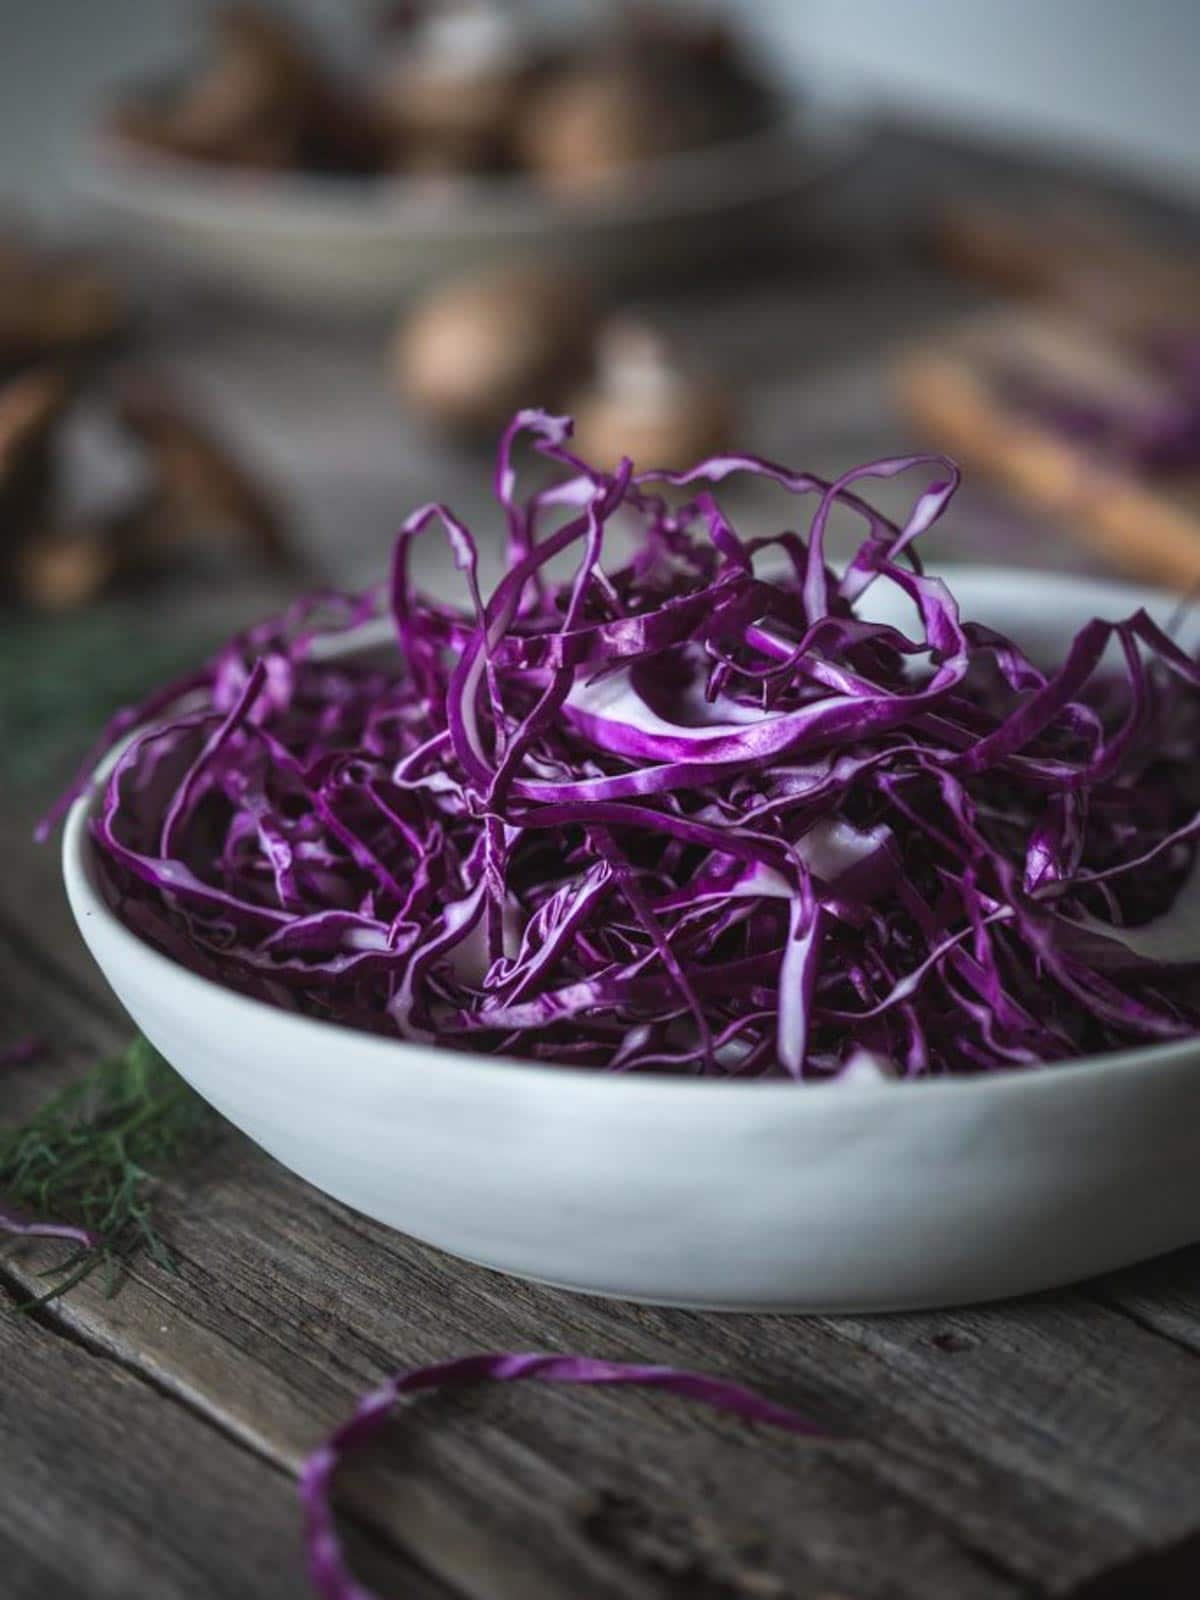 A bowl of thinly sliced red cabbage.